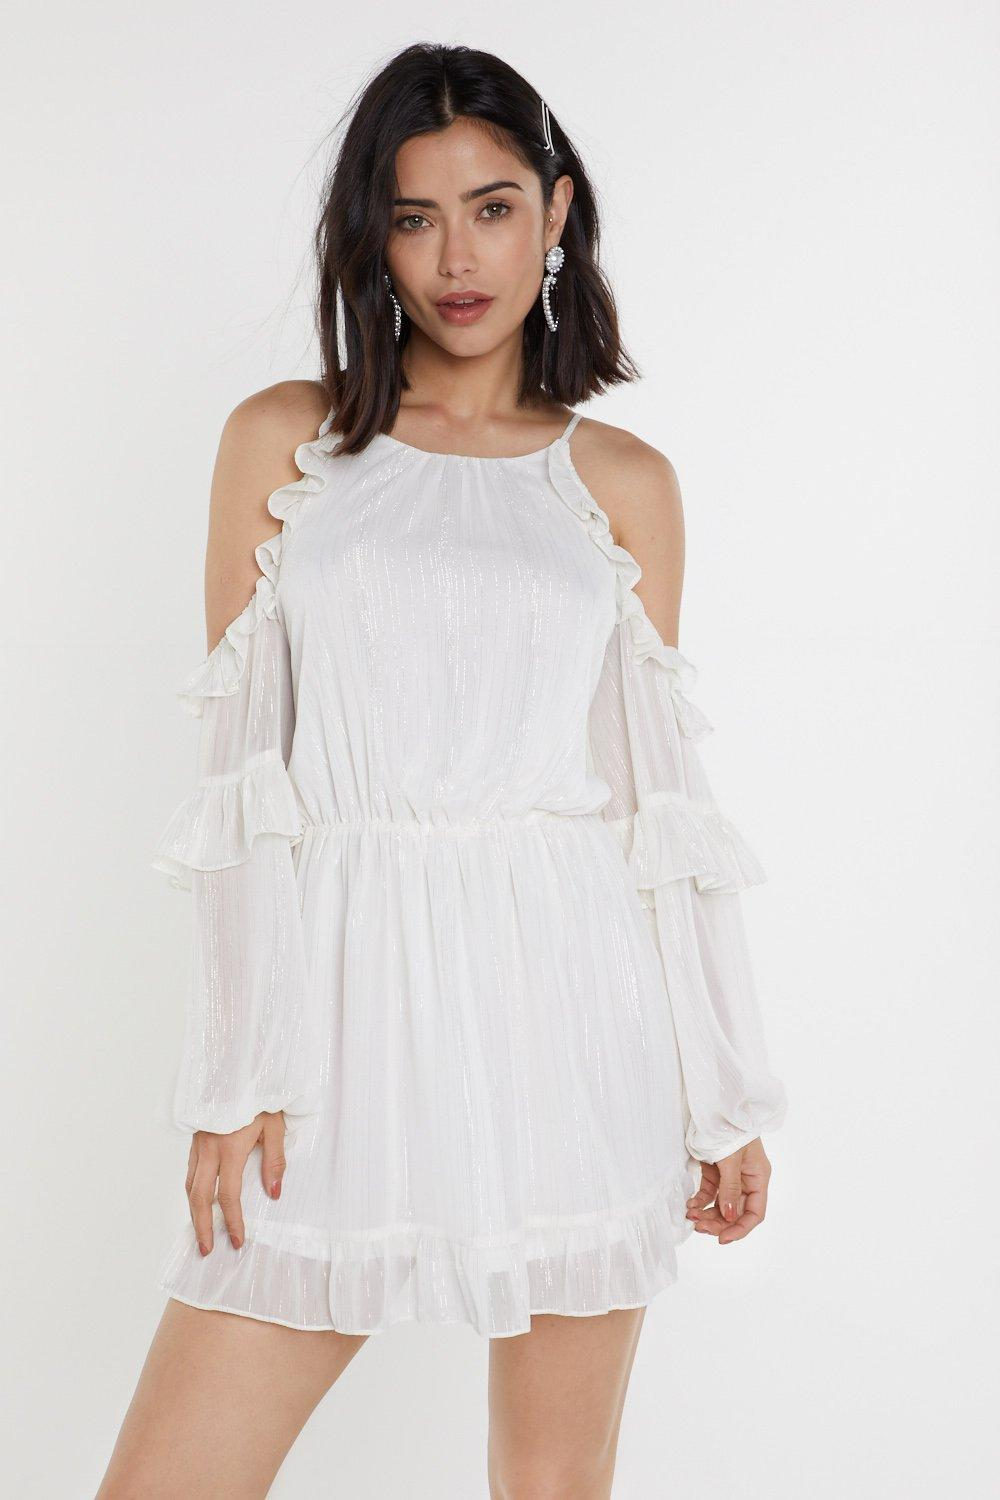 Don't Sleeve Me That Way Cold Shoulder Ruffle Dress